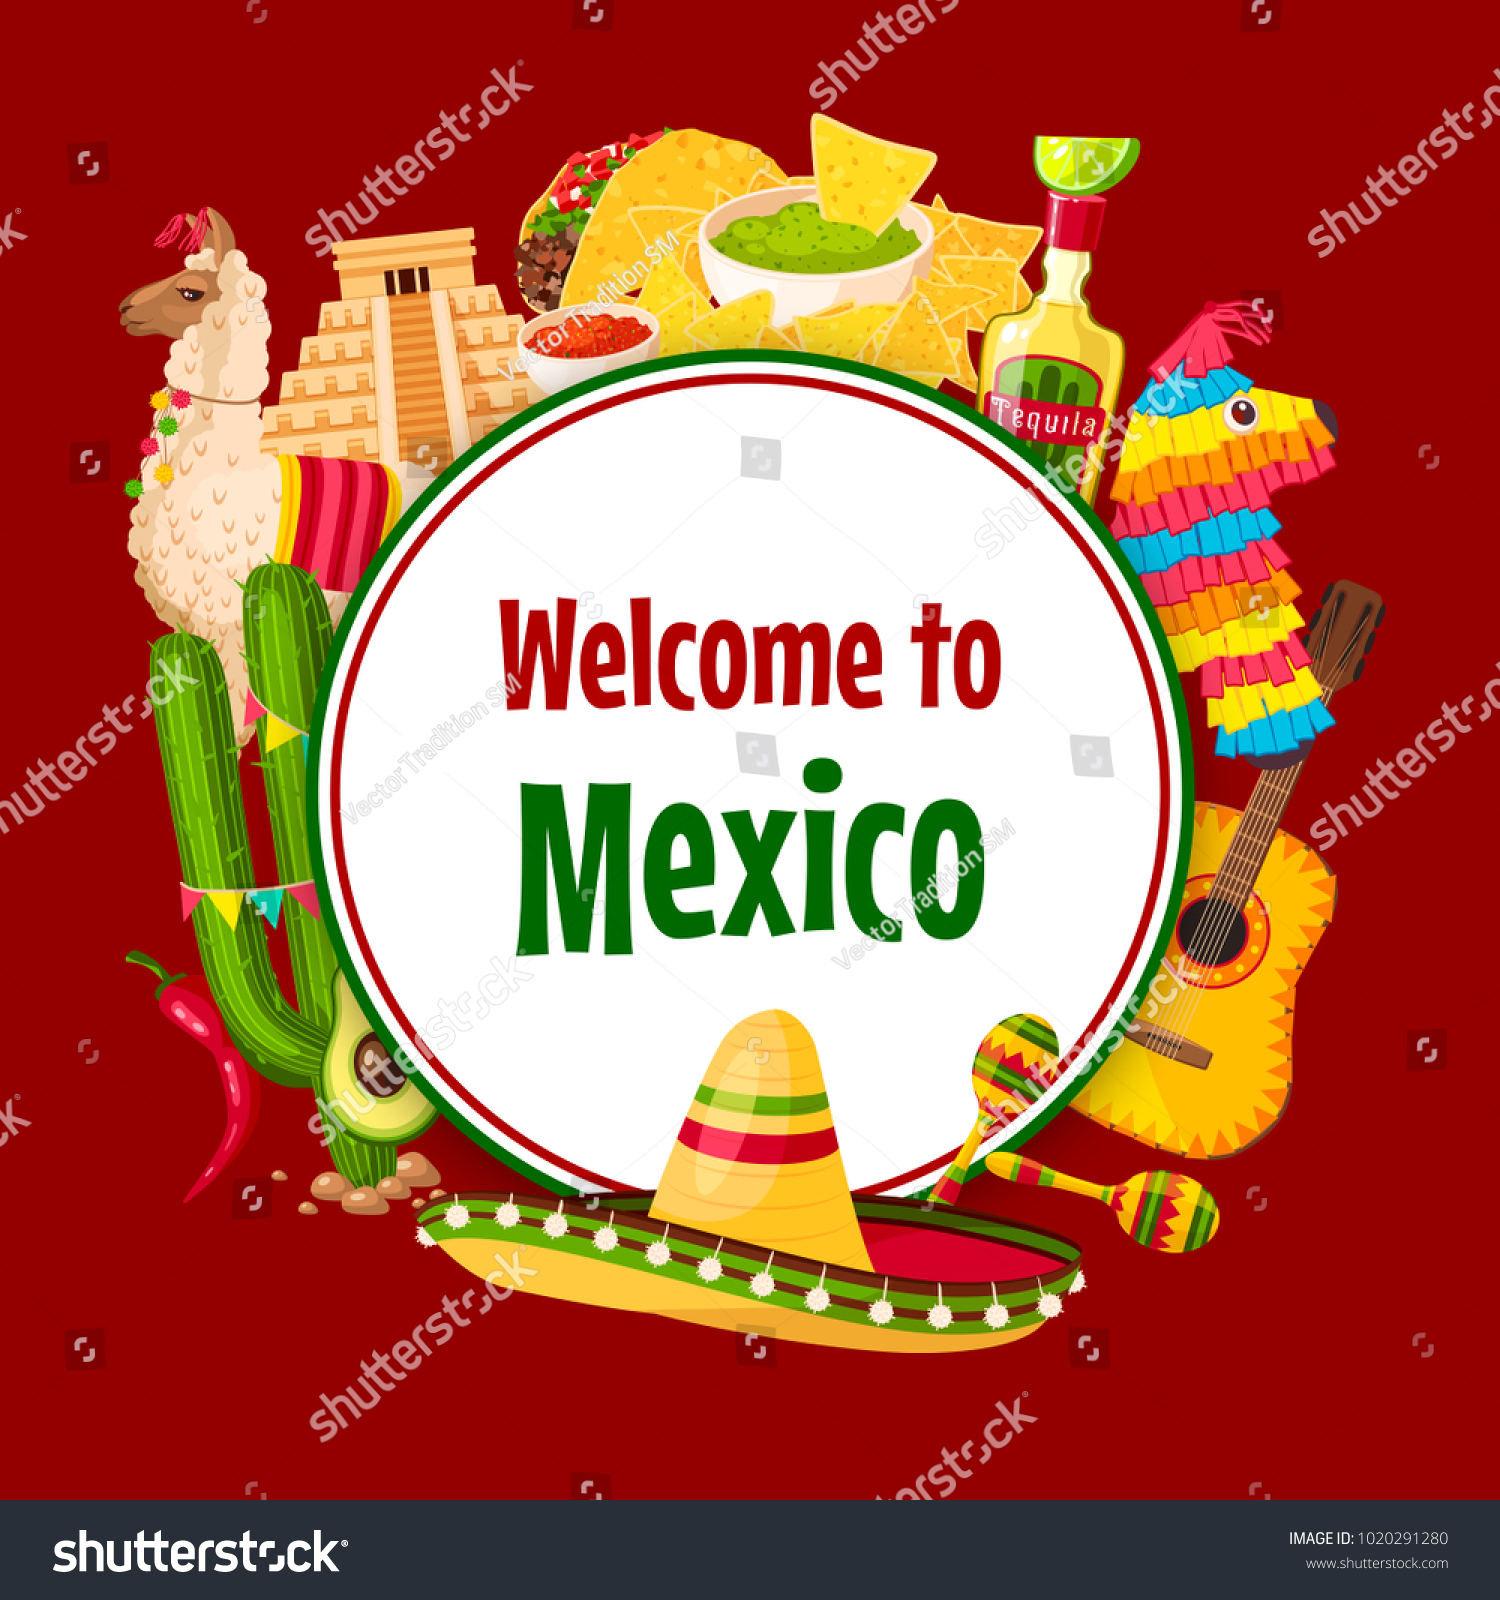 National Symbols Of Mexico Choice Image Meaning Of This Symbol